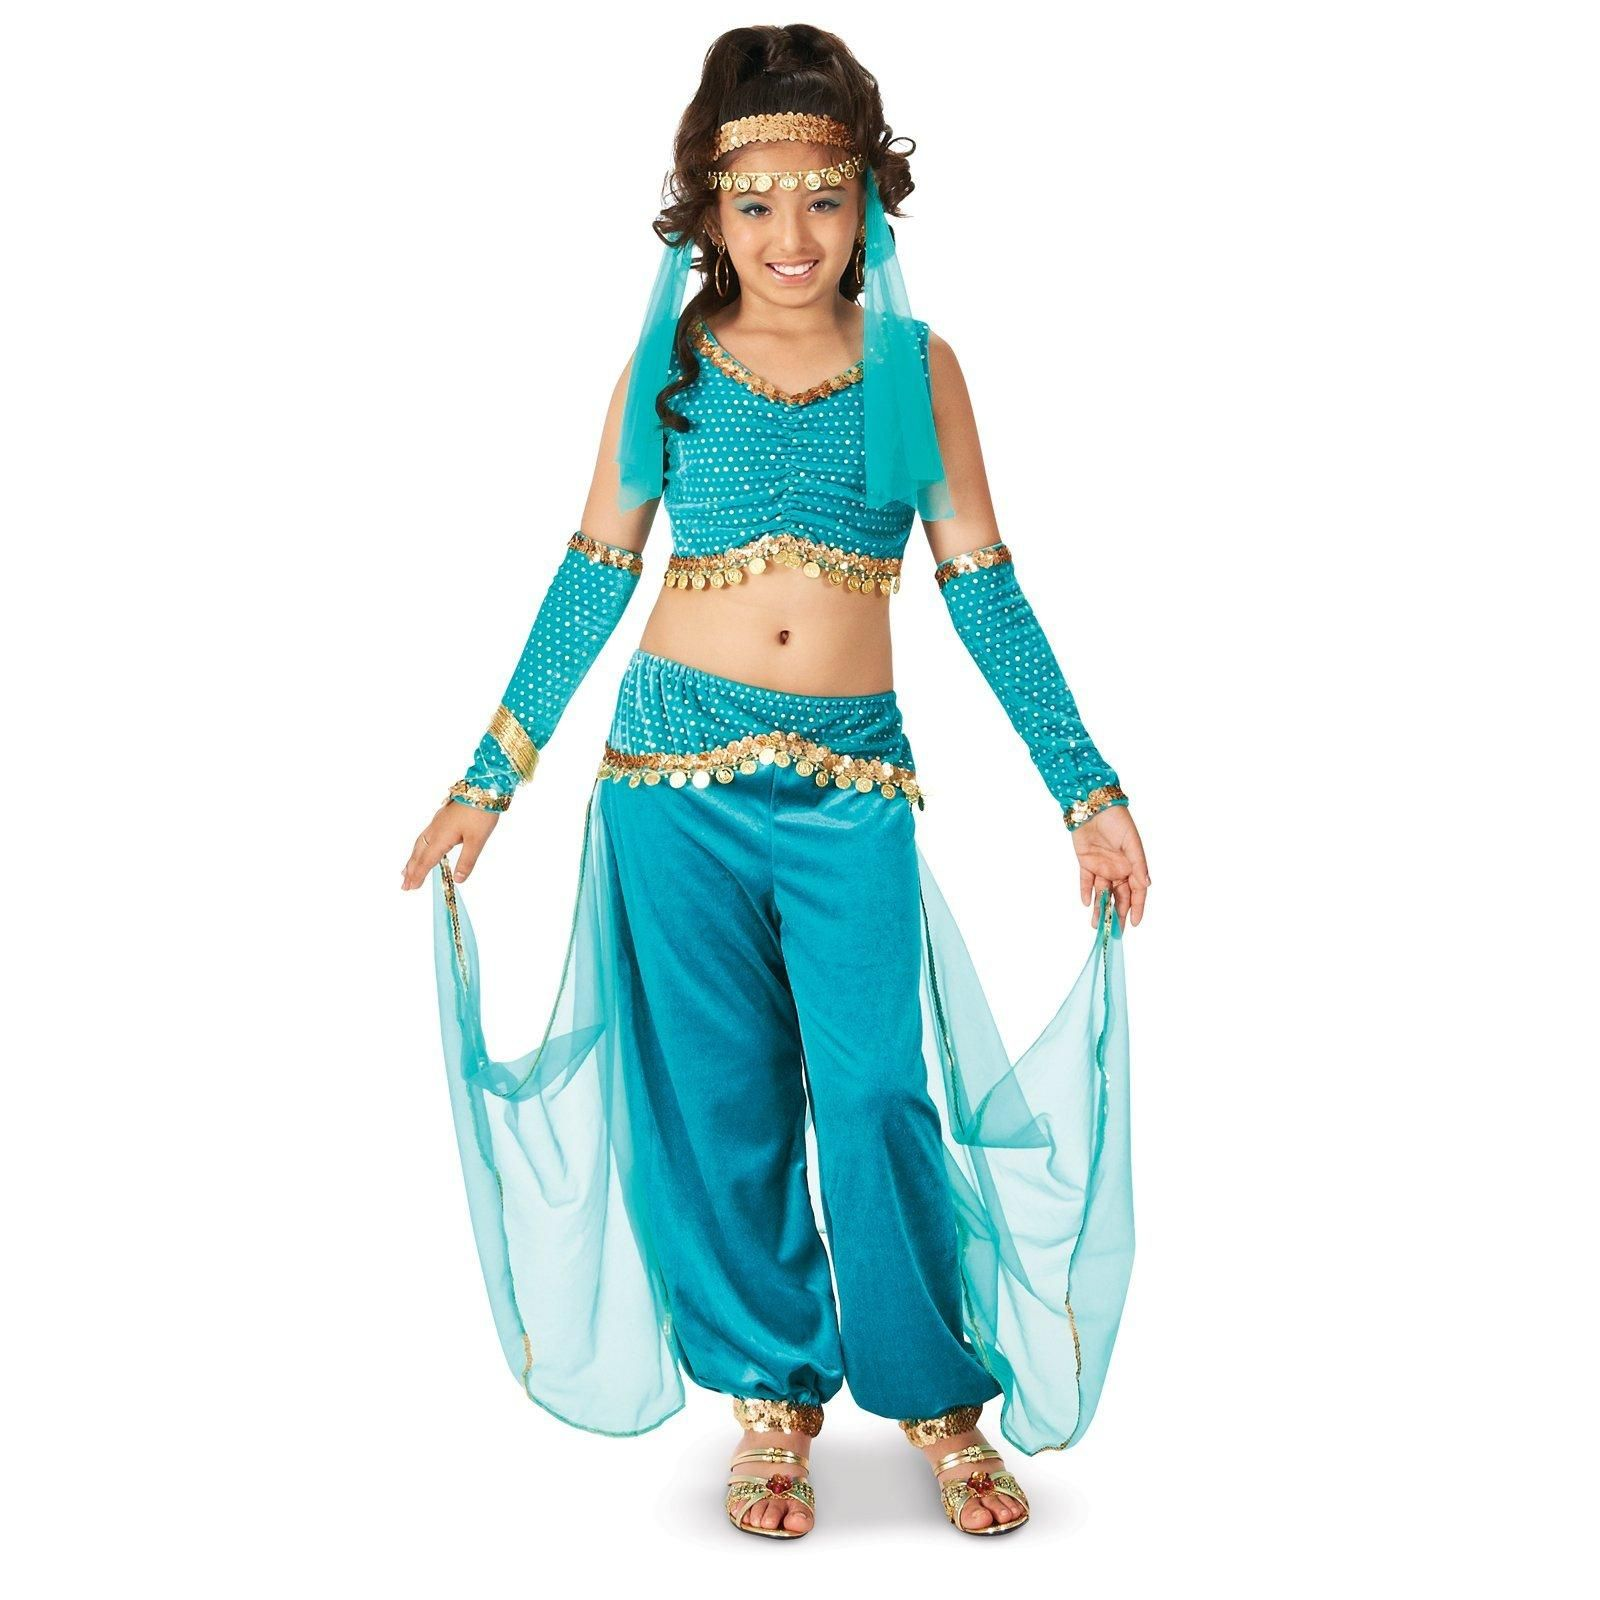 Genie Child Costume from BirthdayExpress.com  sc 1 st  Pinterest & Genie Child Costume from BirthdayExpress.com | Frozen | Pinterest ...